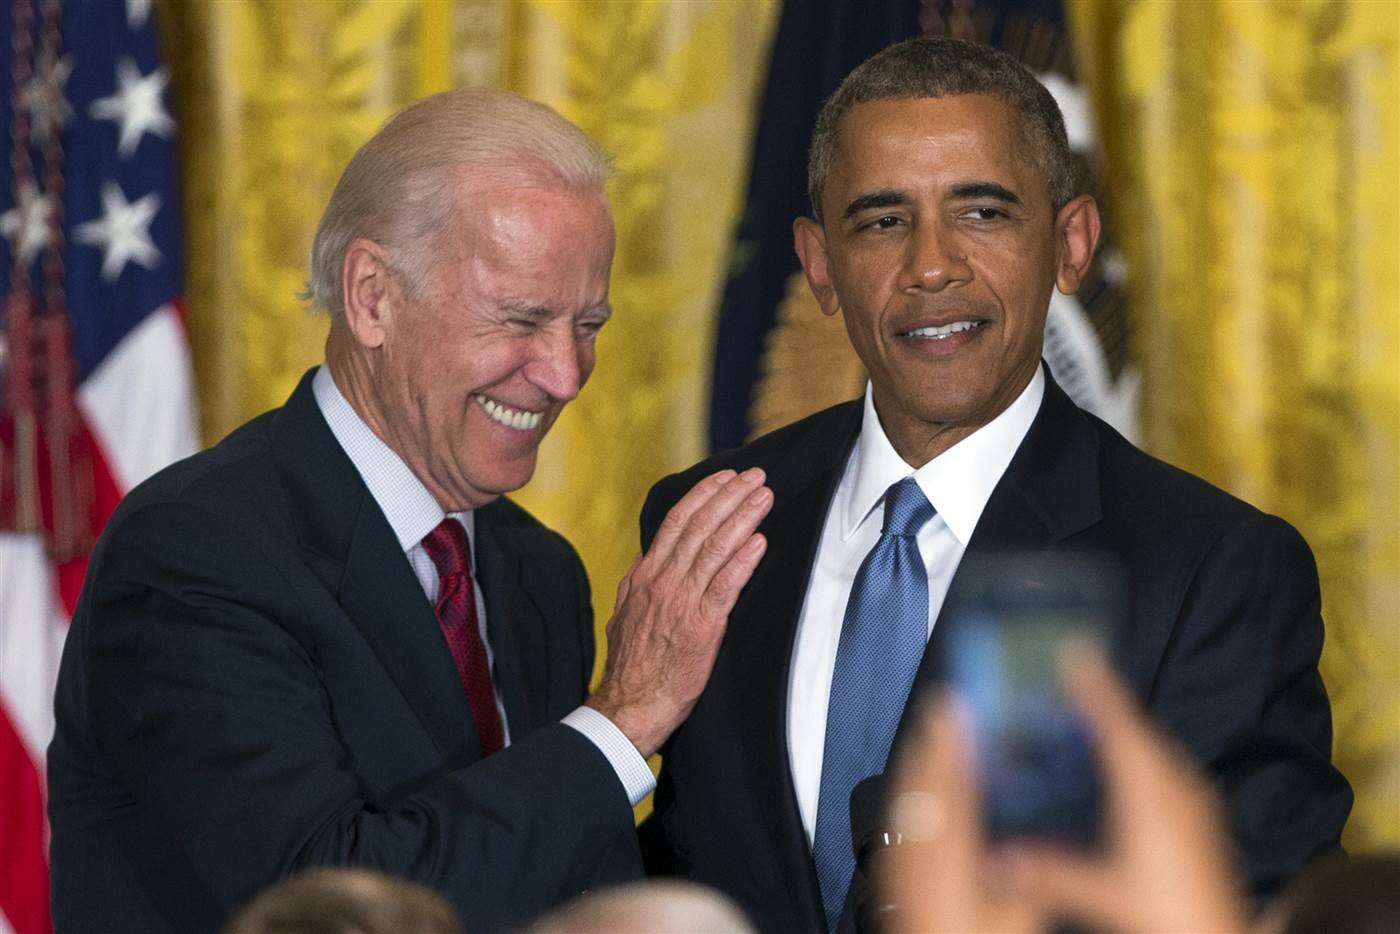 The bromance between Obama and Biden is apparently still going strong